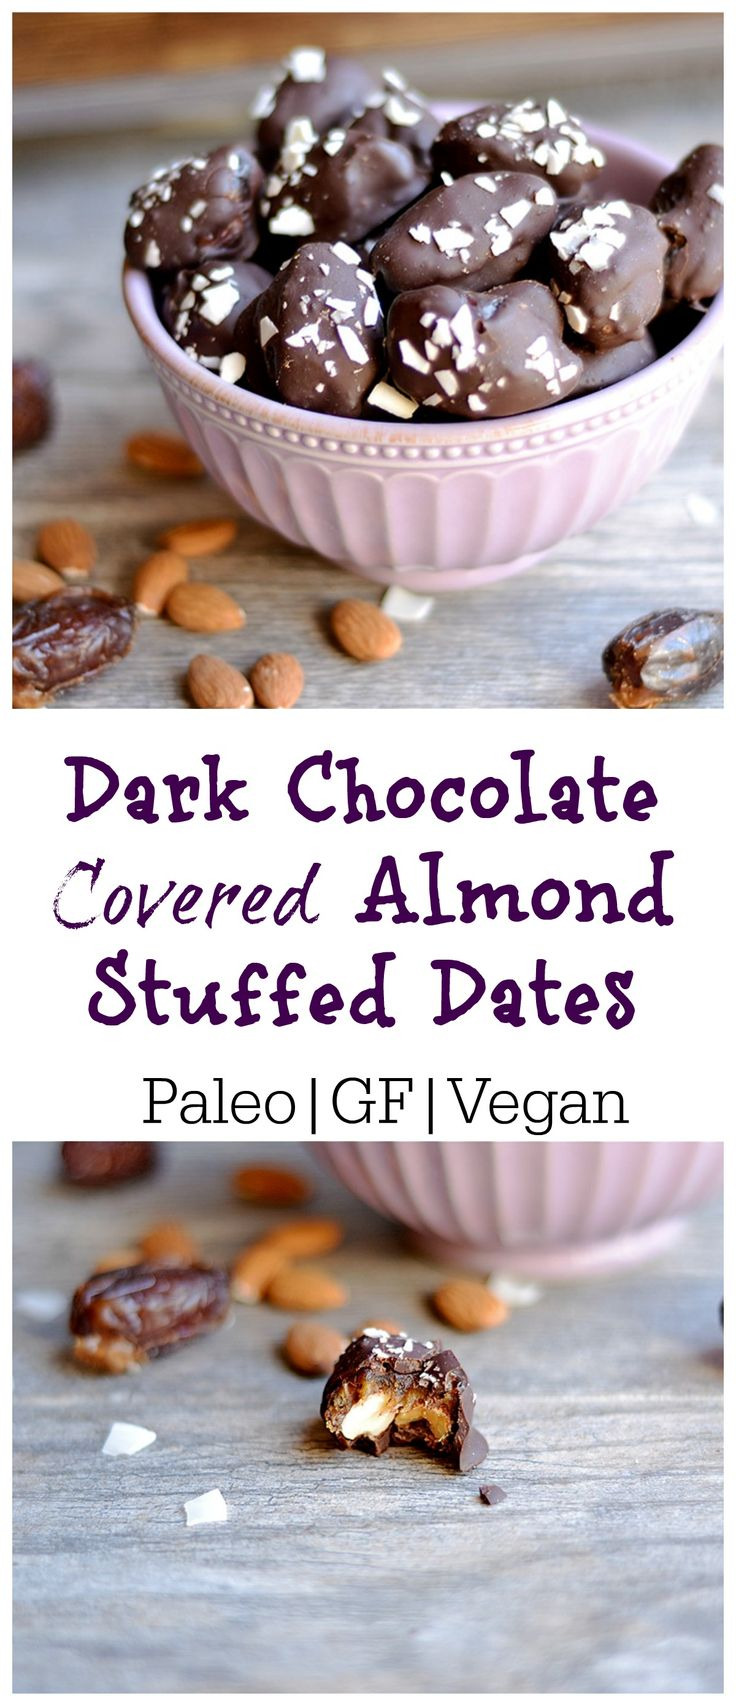 The PERFECT clean eating dessert. Only 4 ingredients, super simple, and my new favorite way to eat chocolate!!